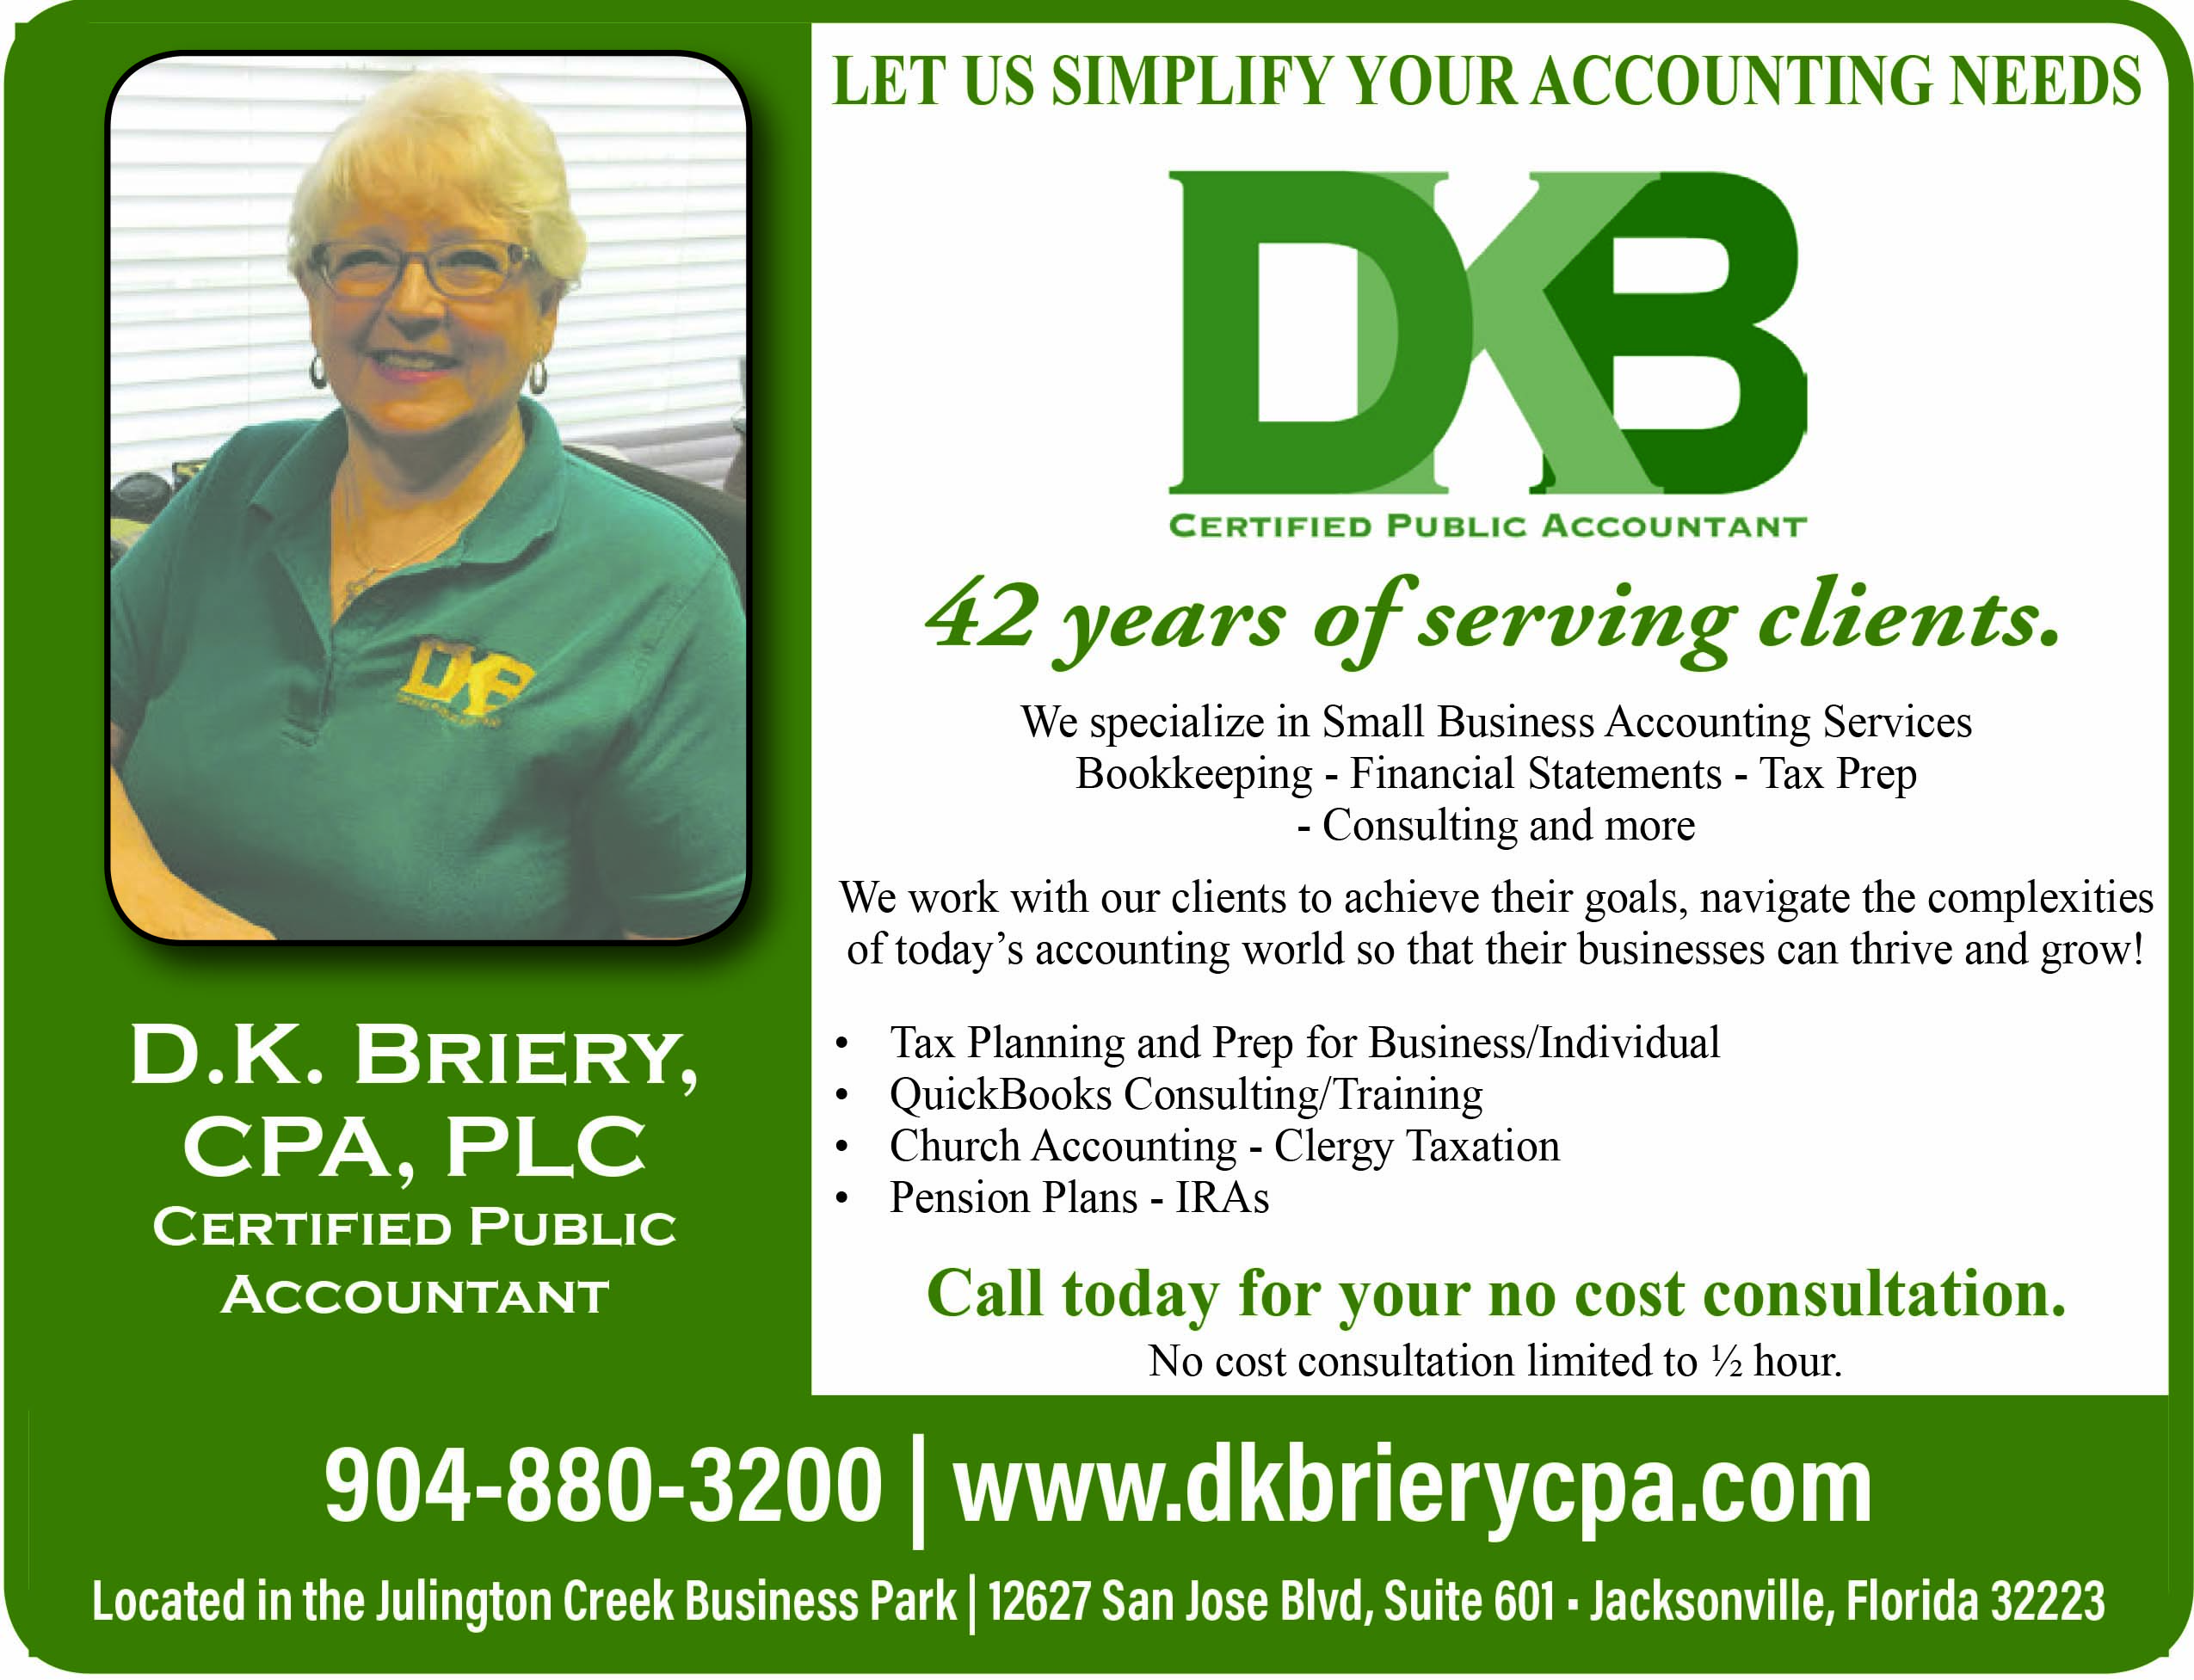 DKB Certified public accountant. Let us simplify your accounting needs 42 years of serving clients